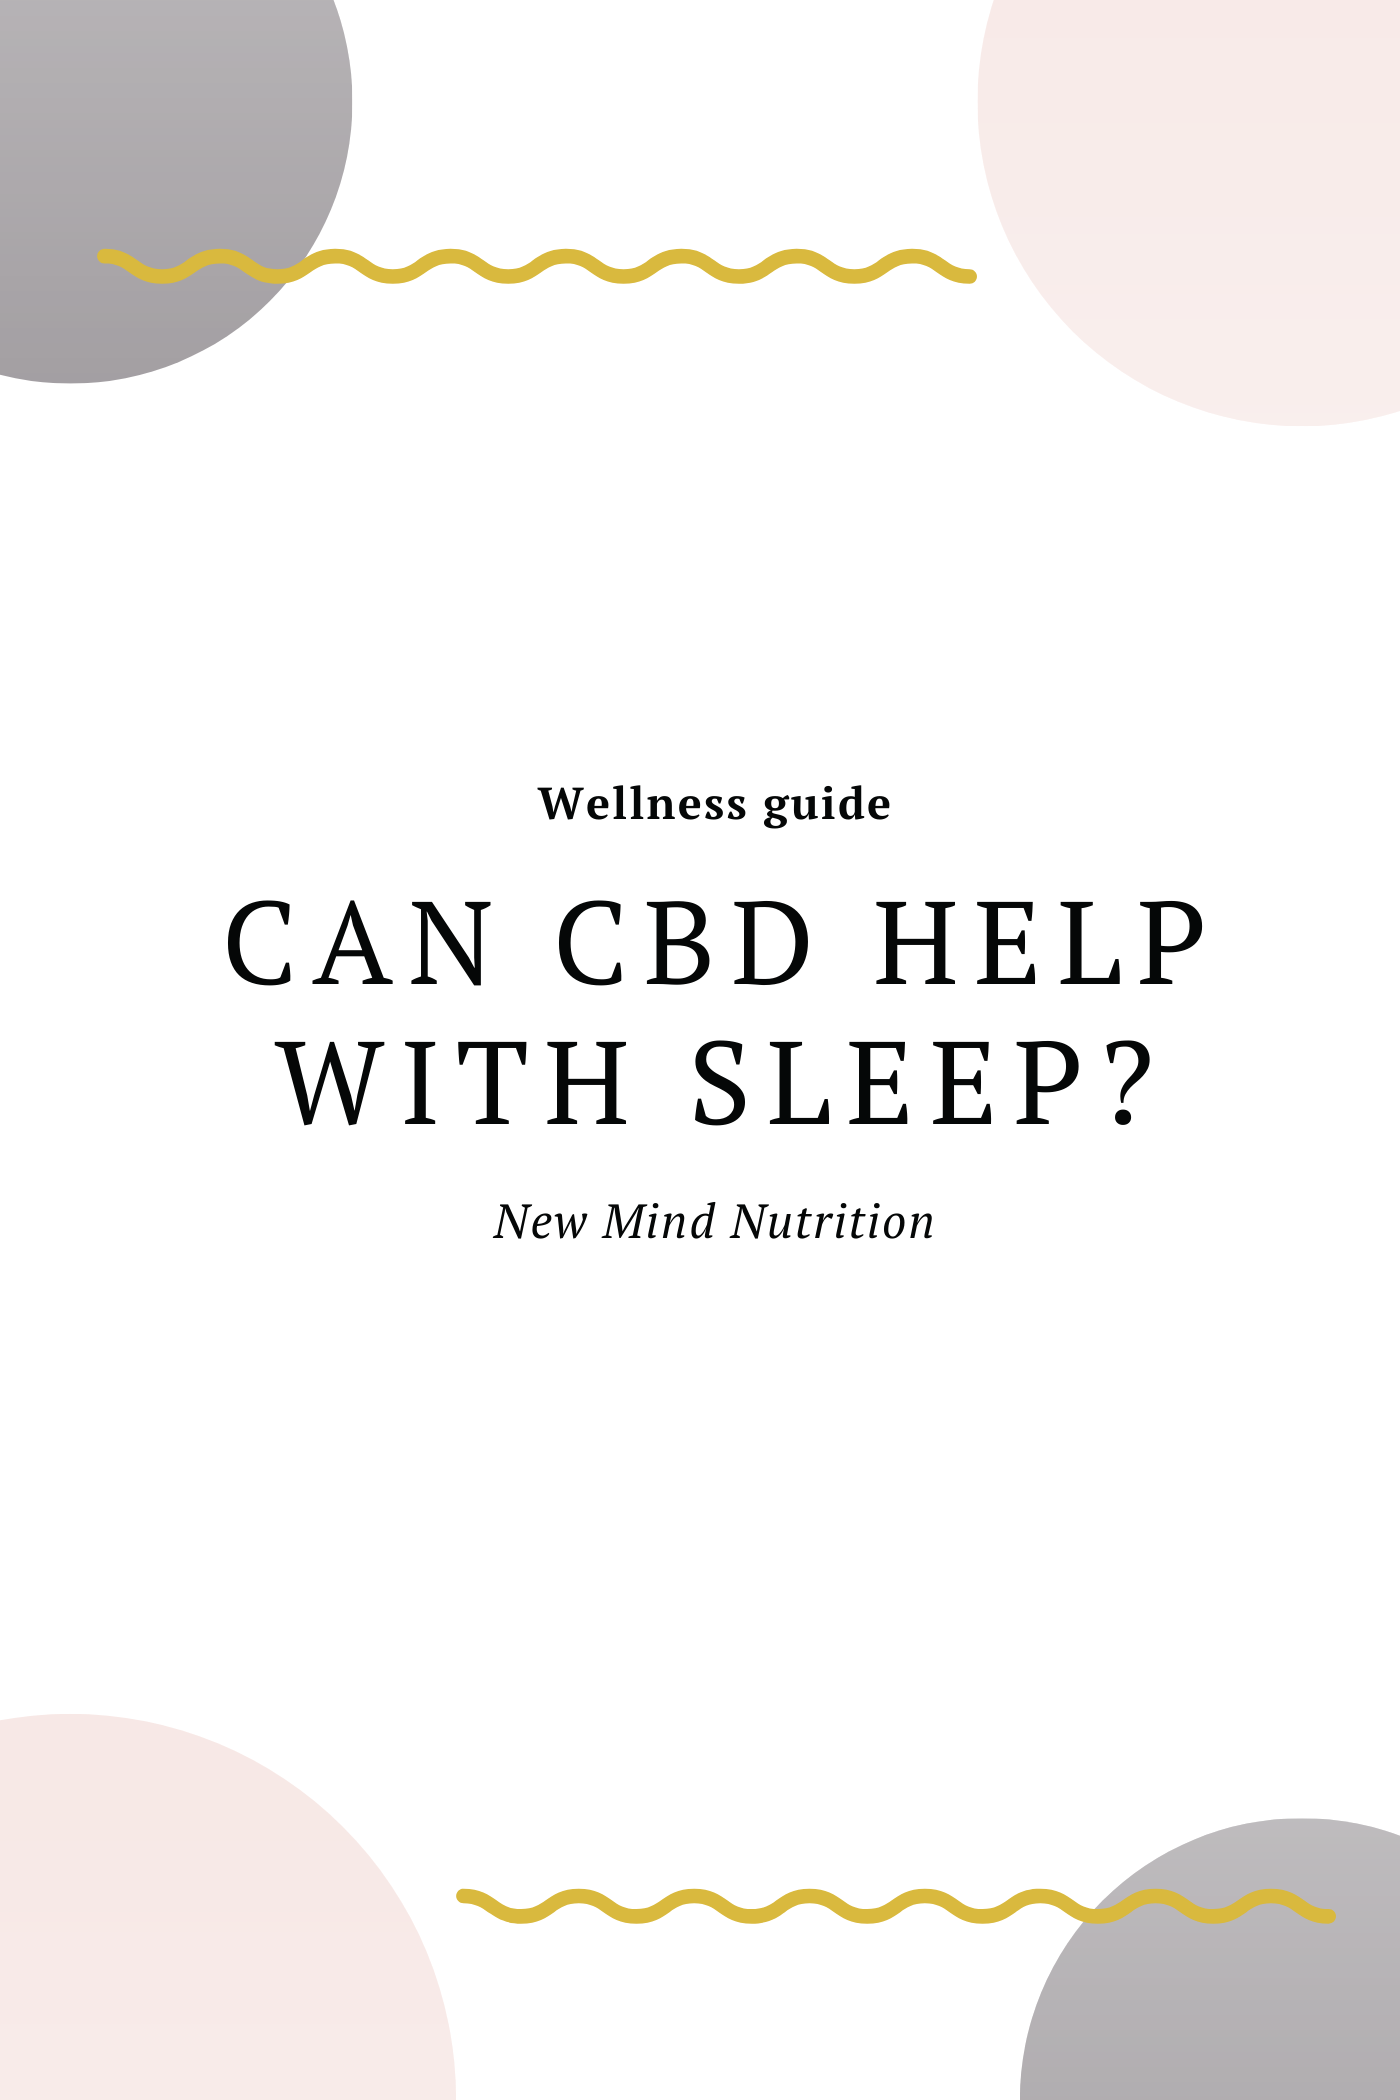 Can CBD help you sleep?